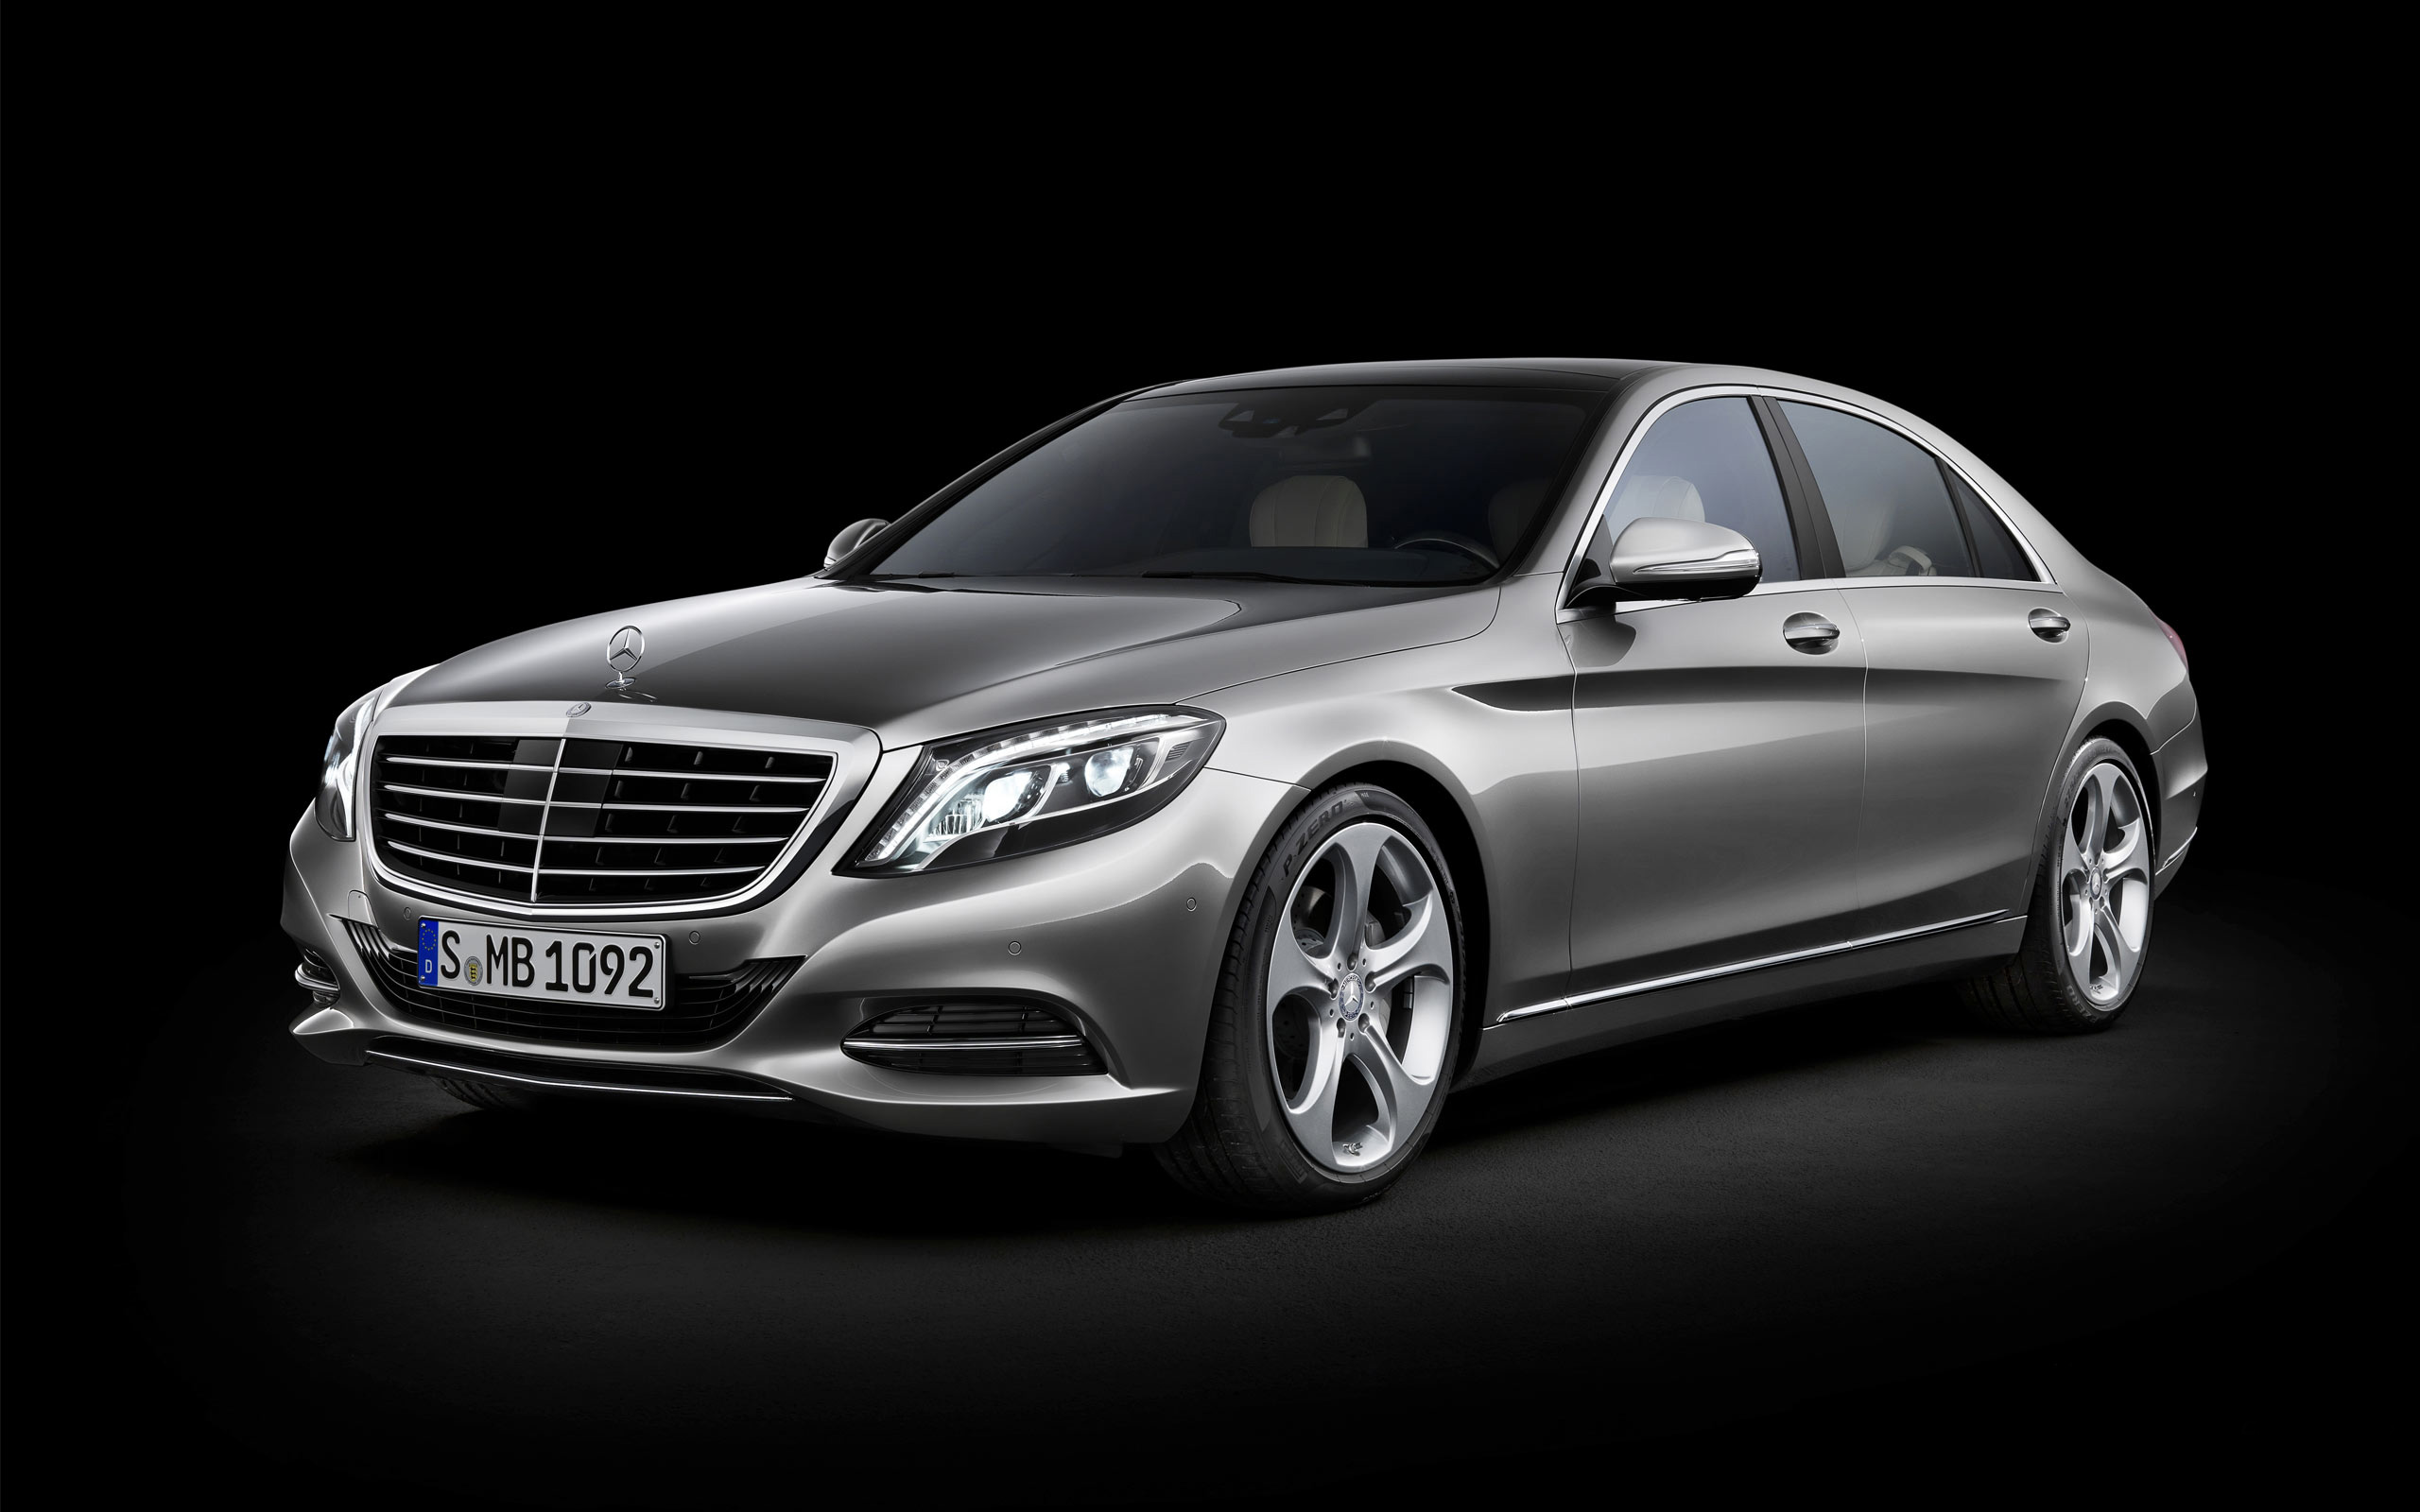 2014 mercedes benz s class wallpaper hd car wallpapers